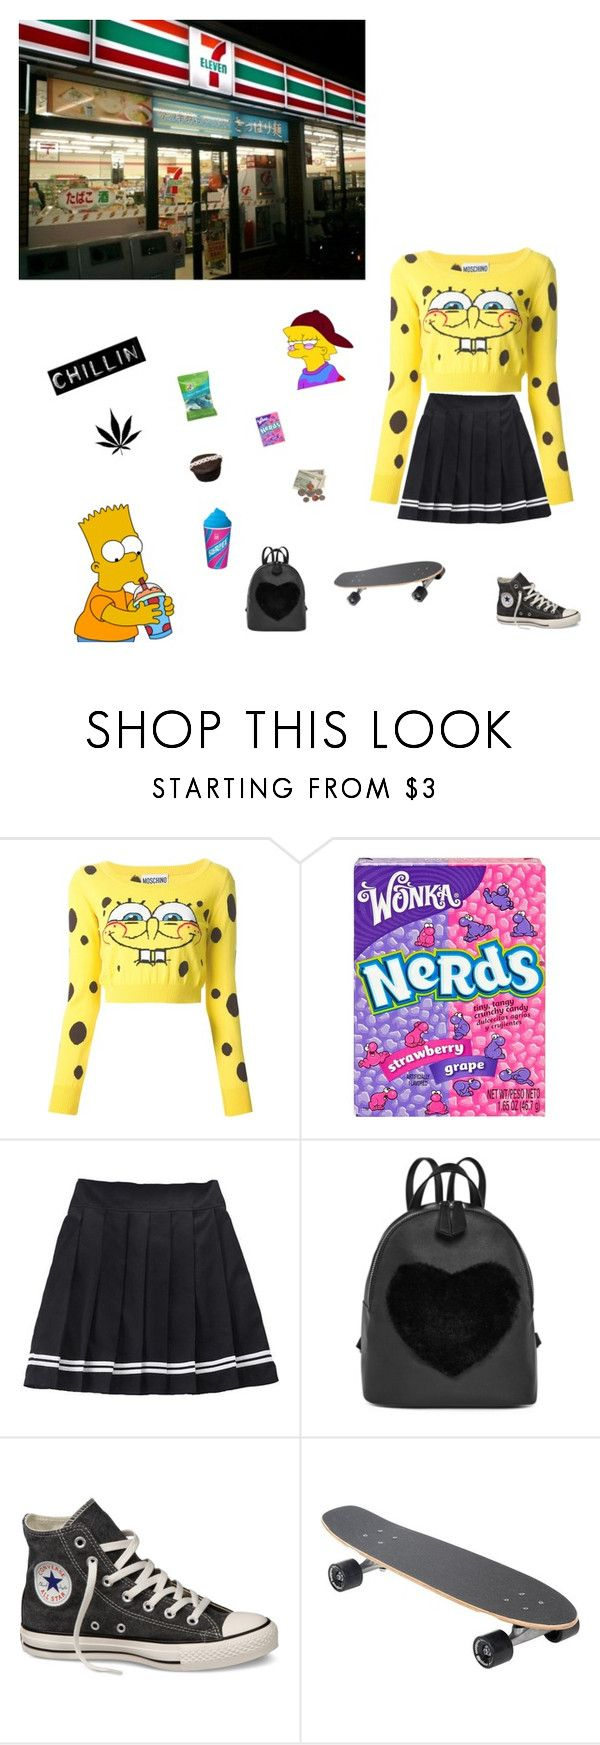 """I love 7 eleven 😍"" by mochichimchim ❤ liked on Polyvore featuring Moschino, River Island and Converse"